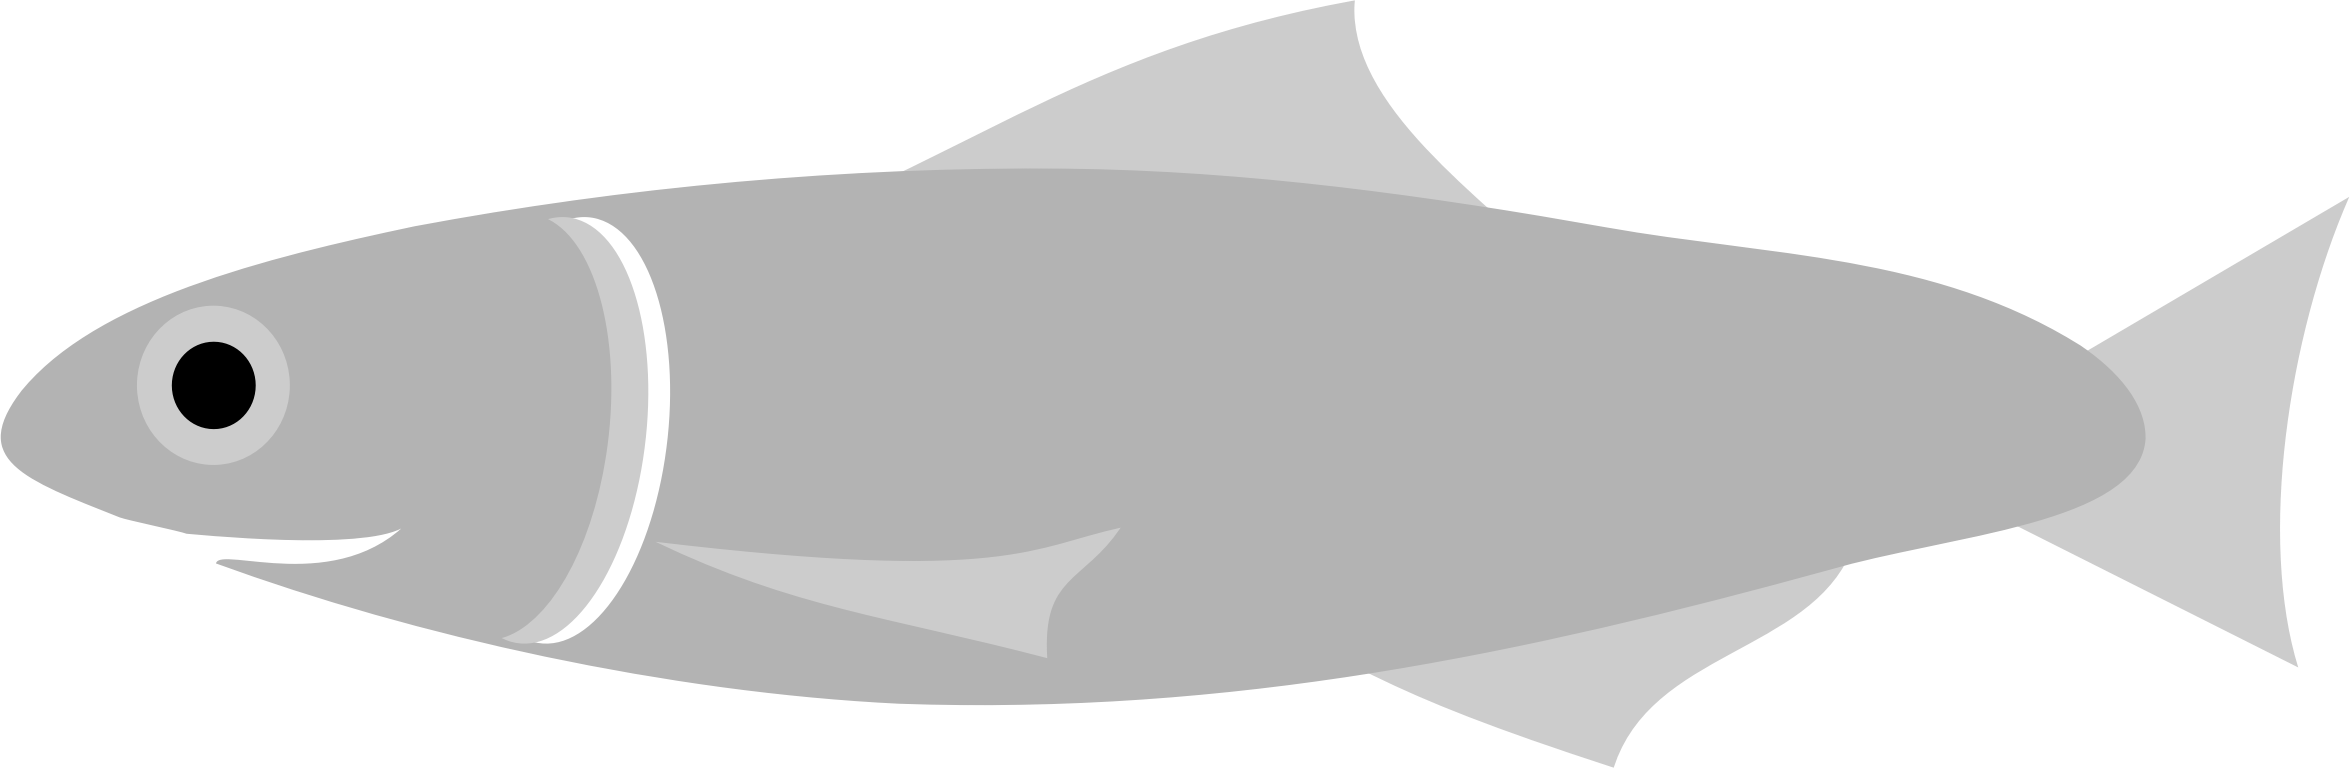 Grey fish clipart image free Clipart - Anchovy Fish image free